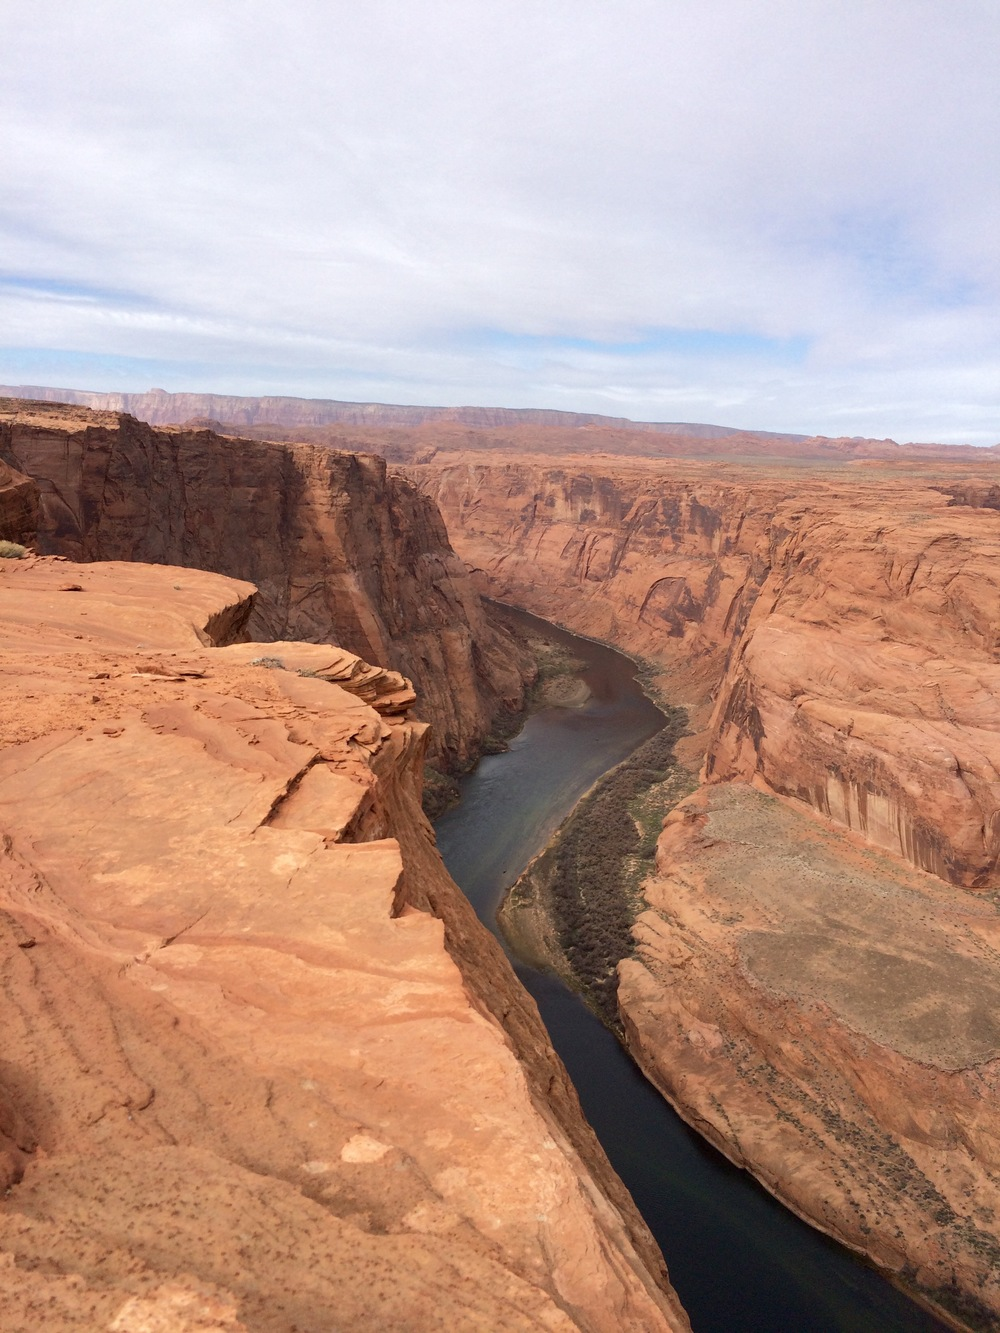 rimrock above the Colorado River. photo by K. Strong.